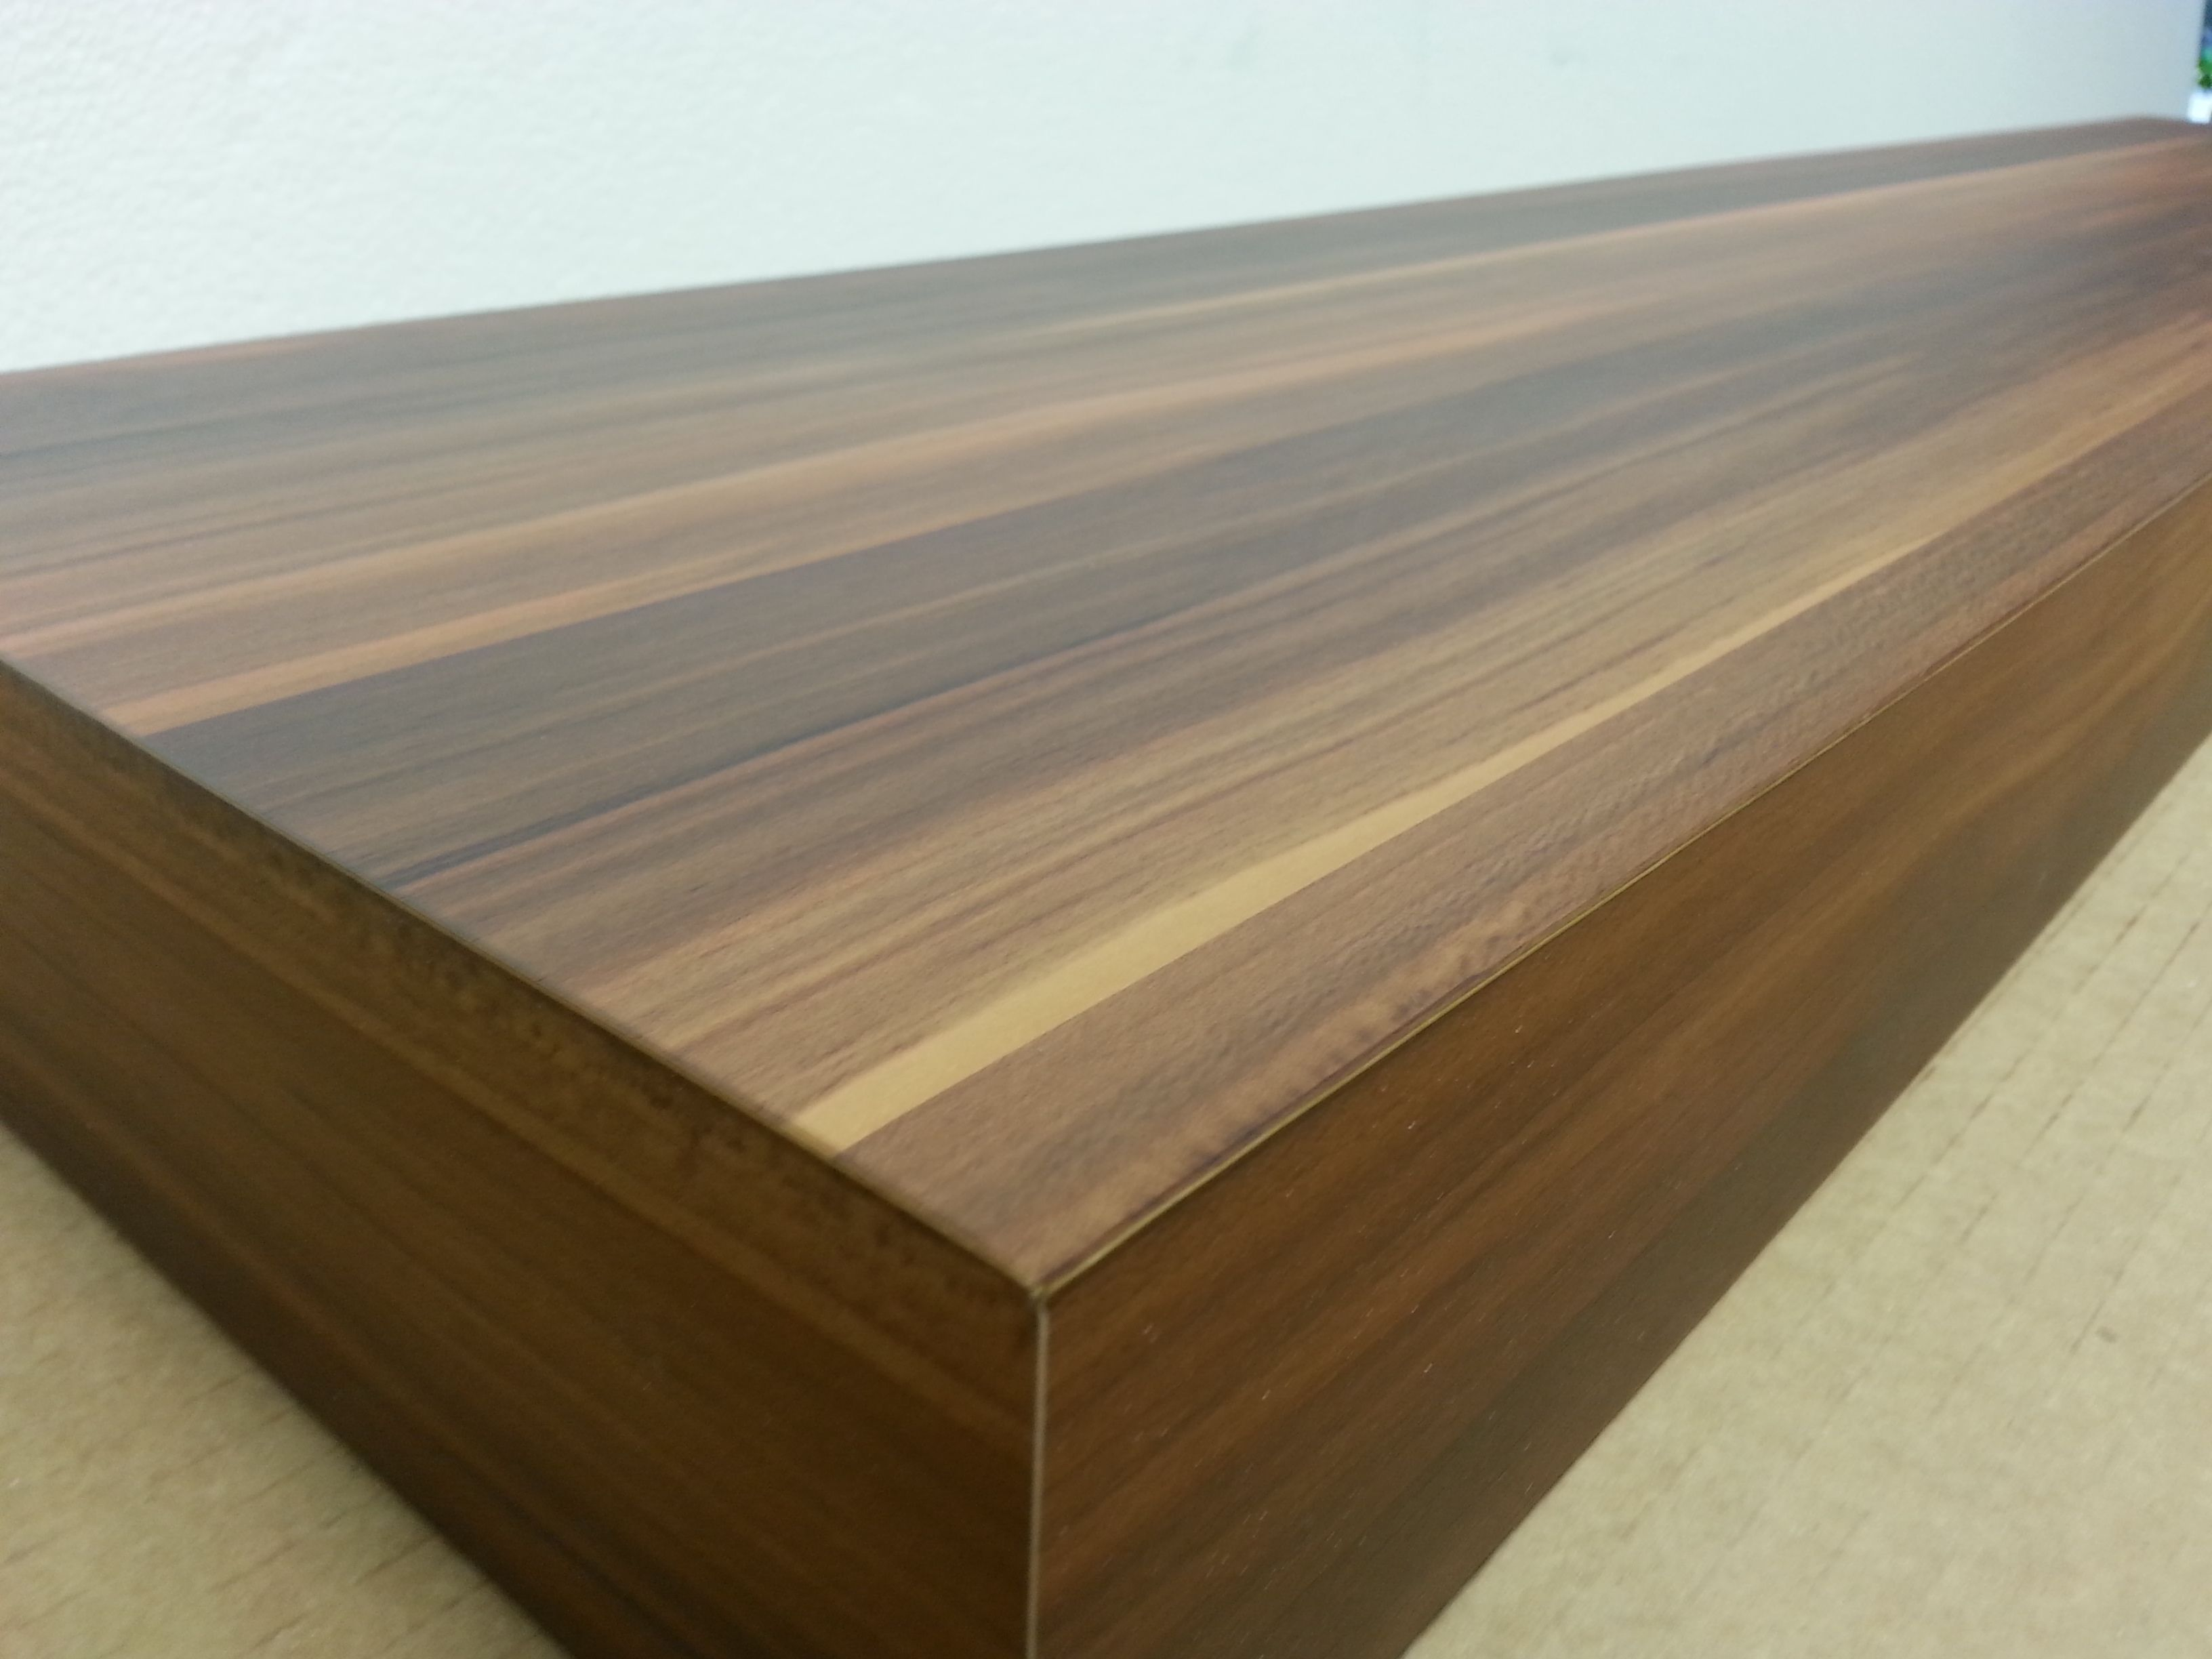 Buy A Hand Crafted Cedar Floating Wall Shelves 72 Inch